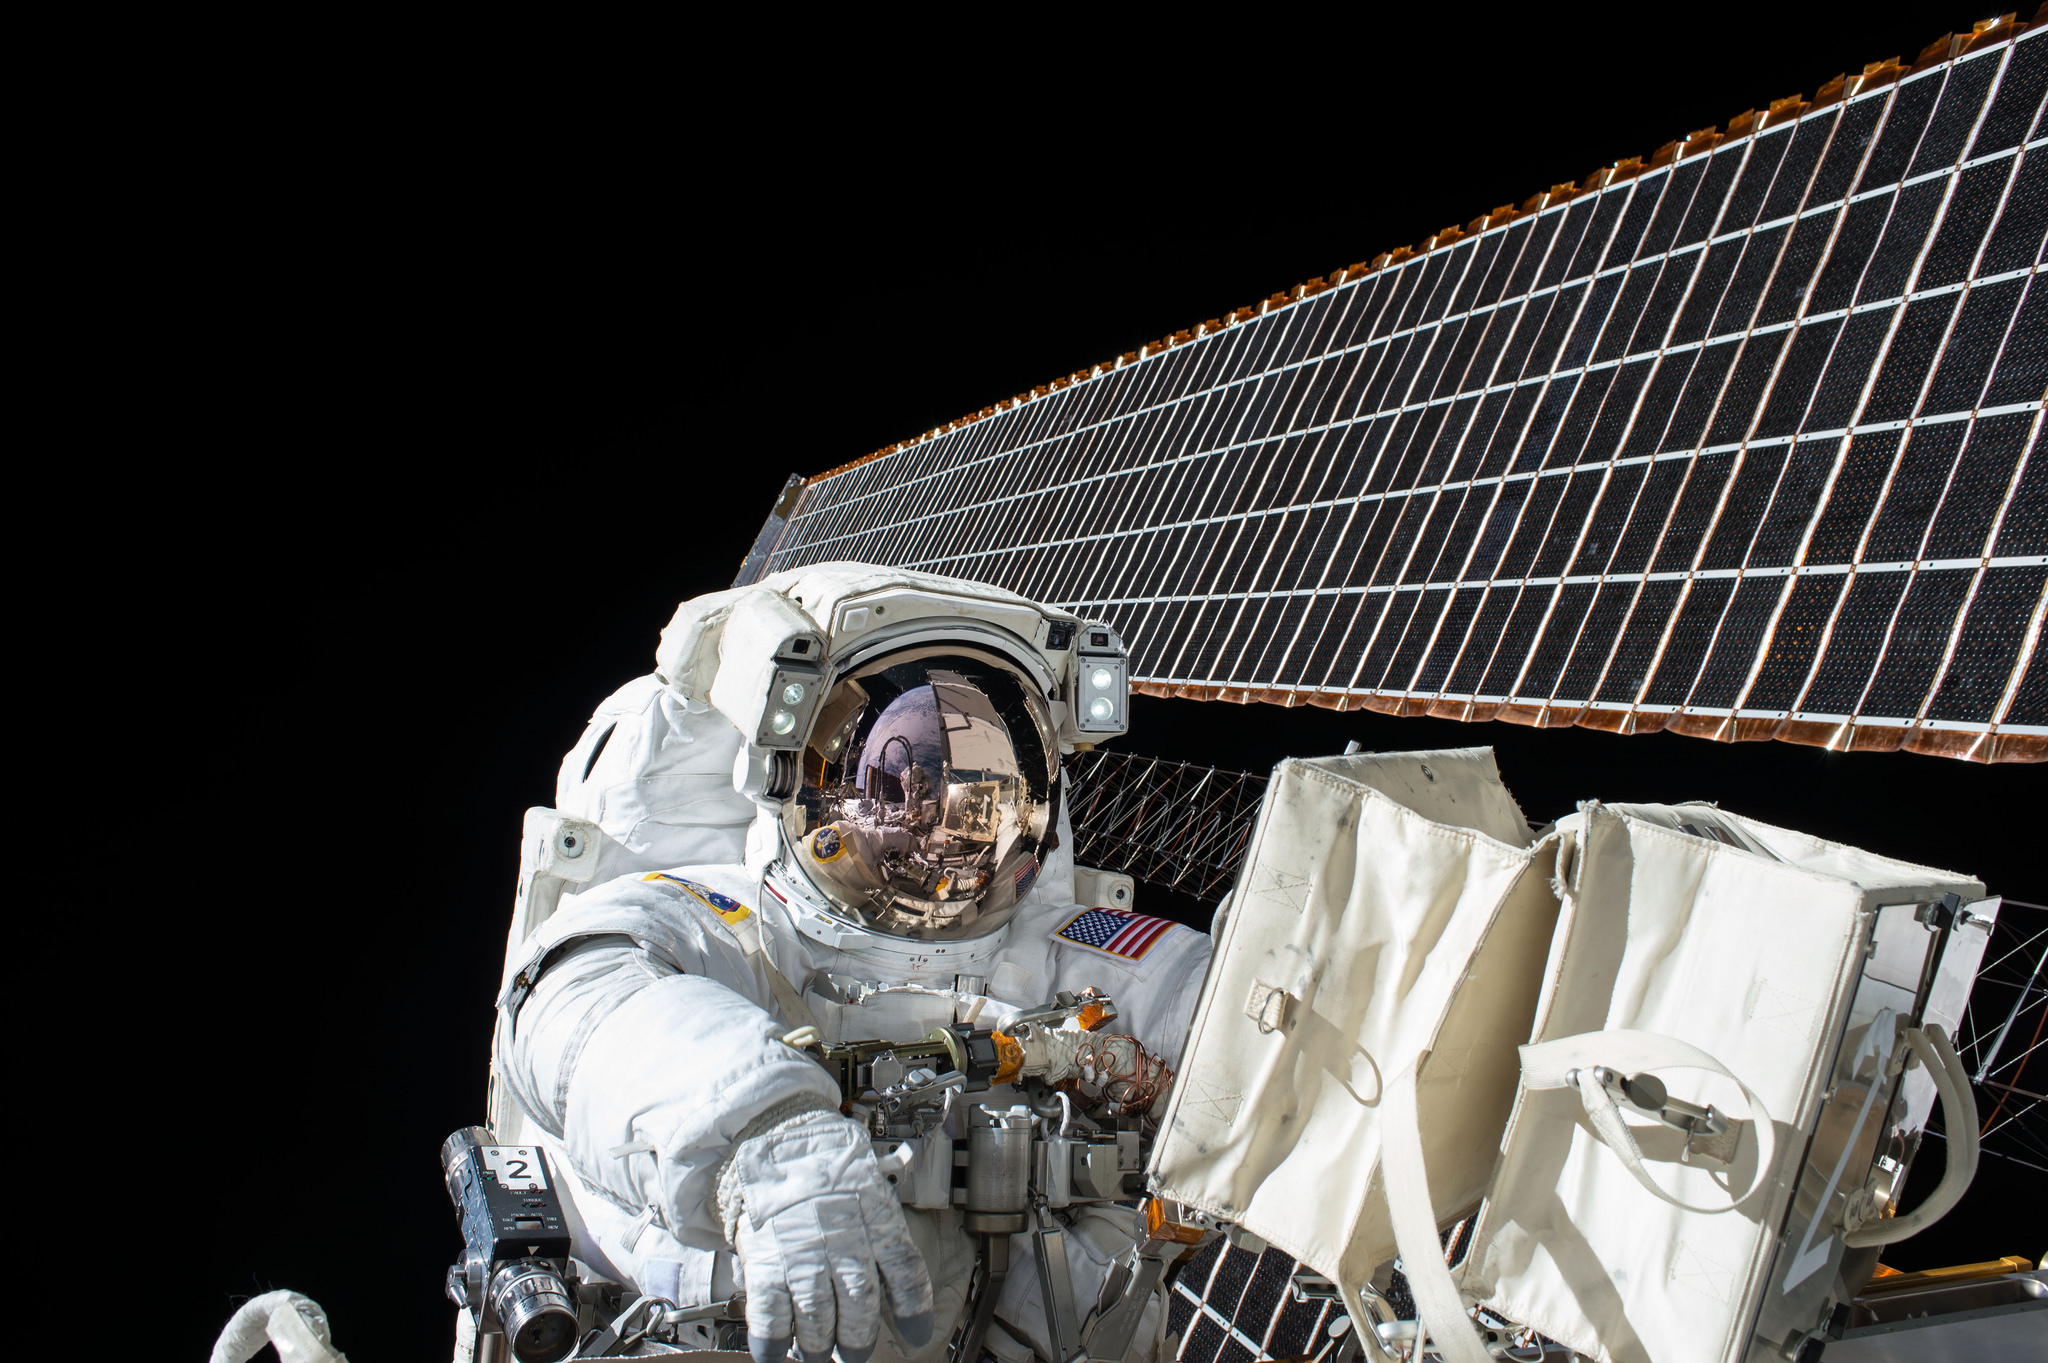 Astronauts May Take Surprise Spacewalk to Fix Space Station: NASA